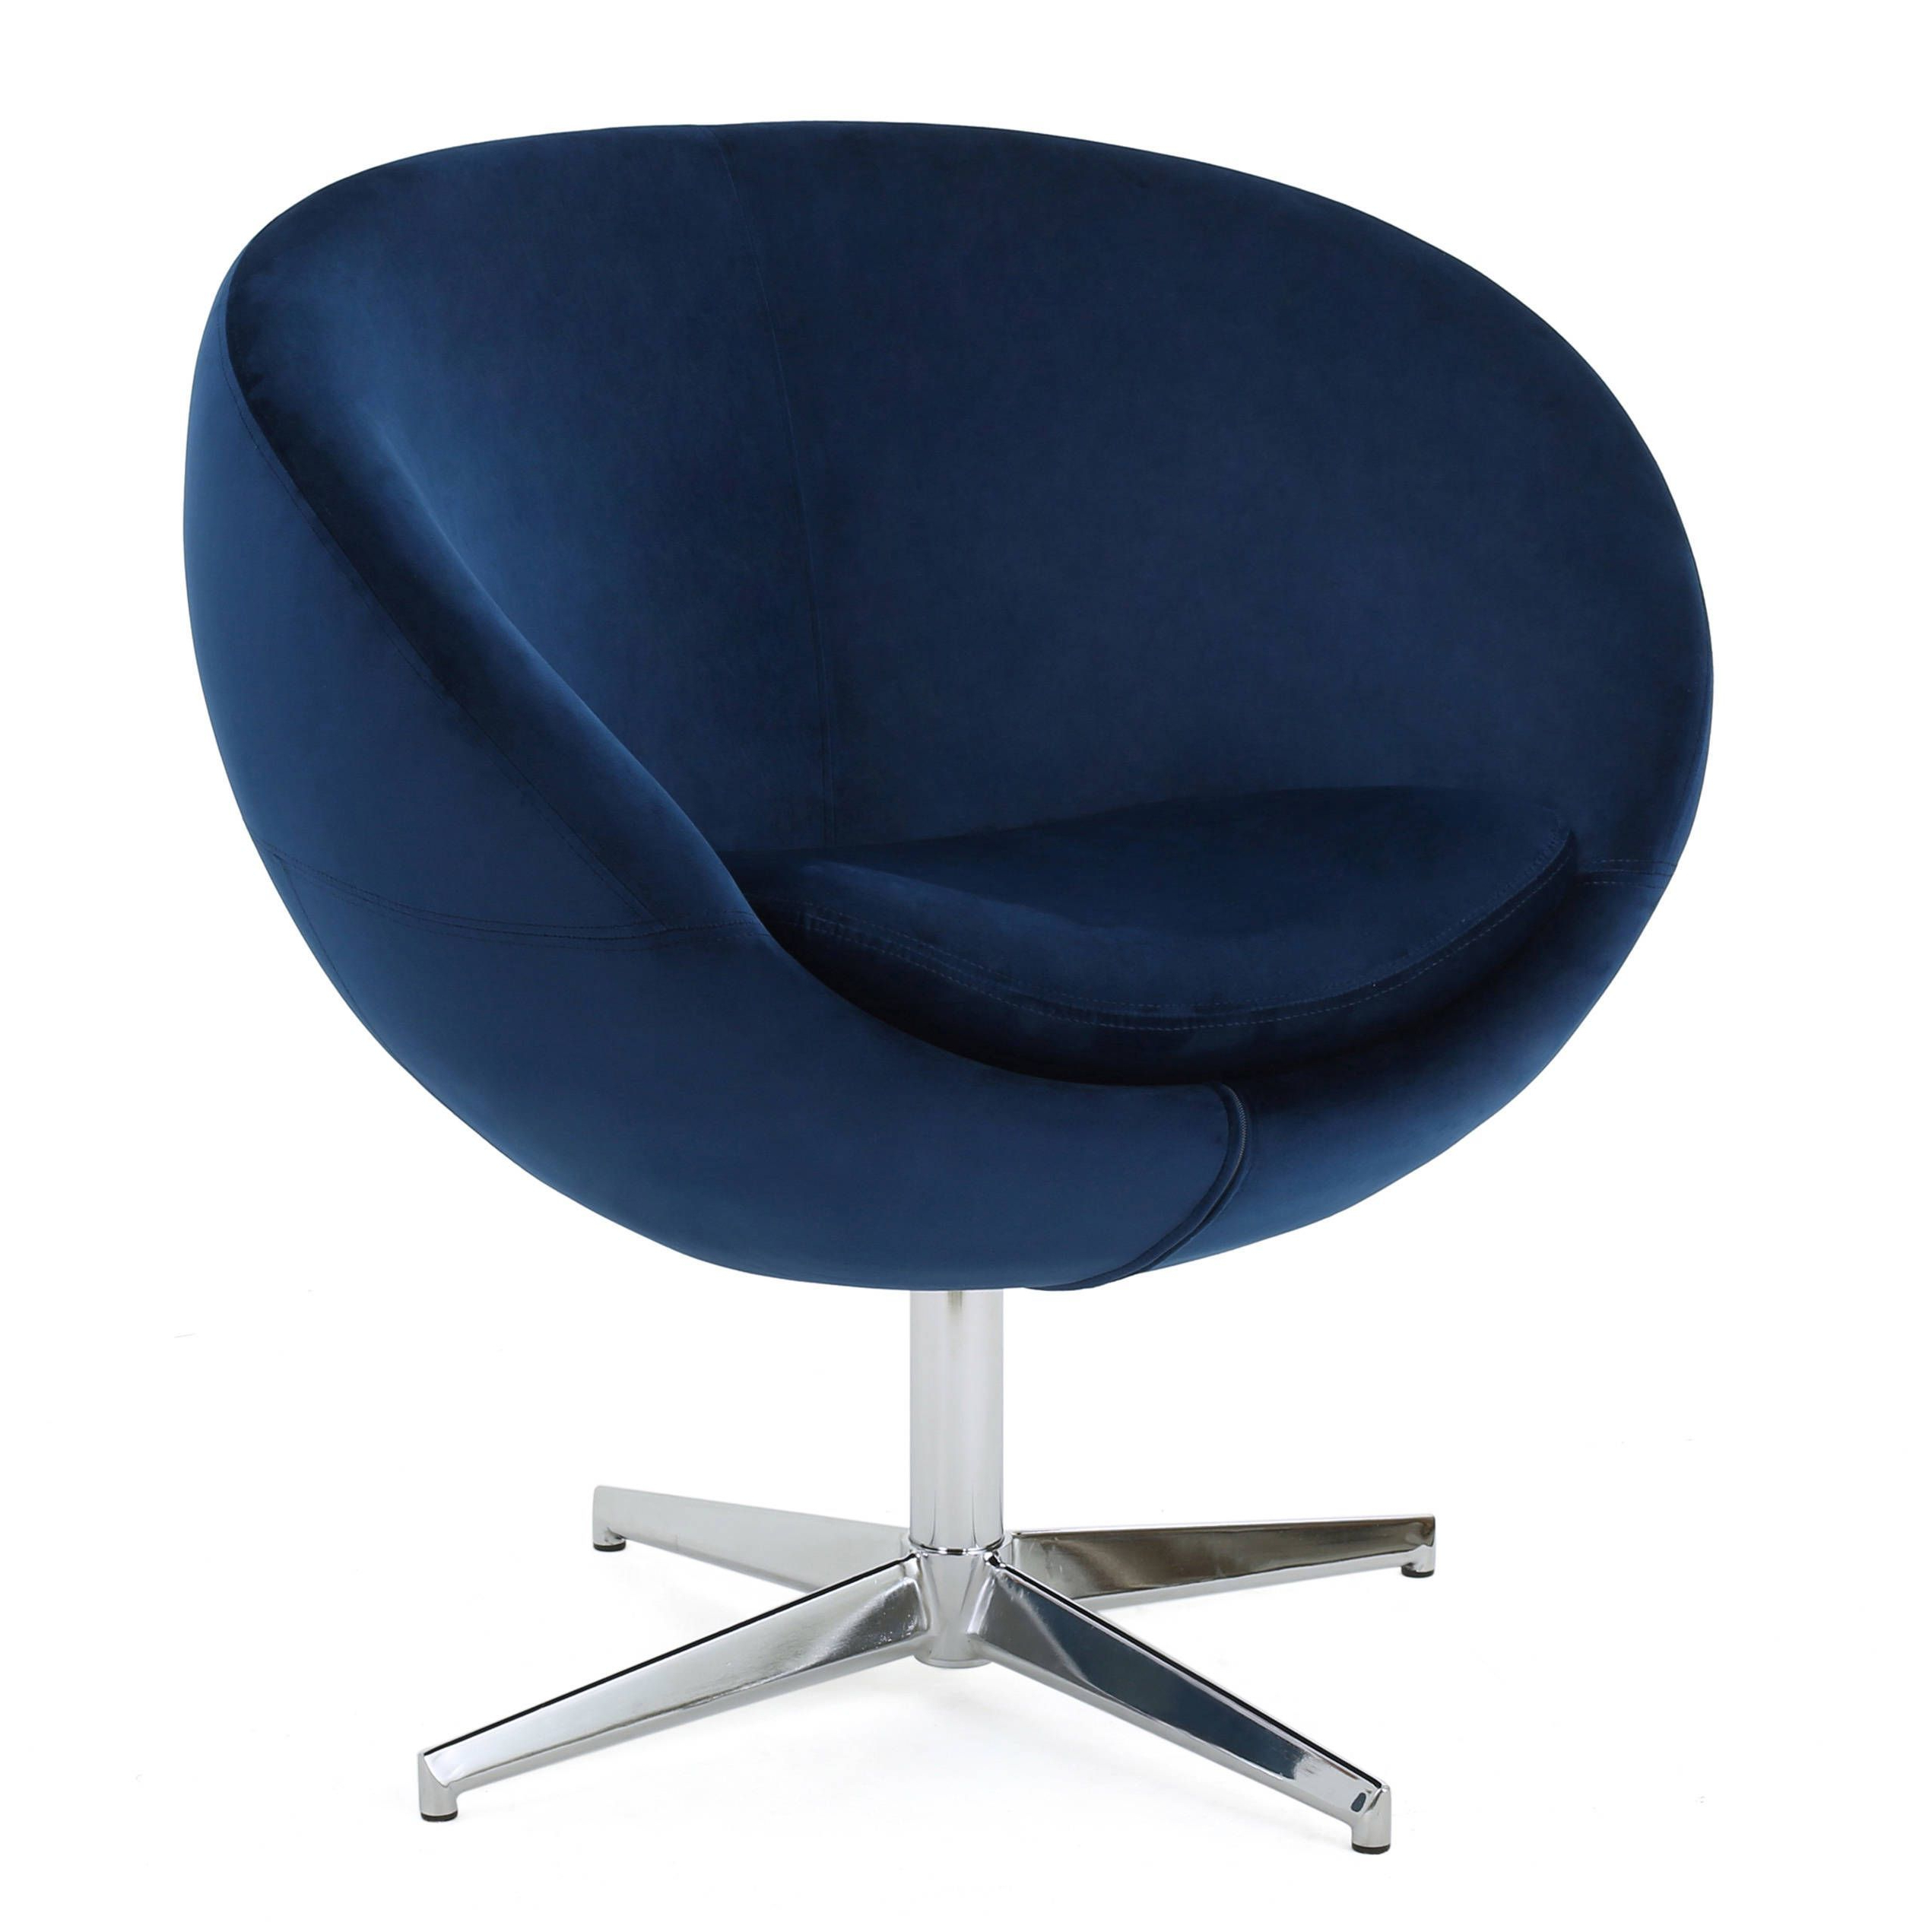 Chill Swivel Chairs With Metal Base Inside Well Known Isla Velvet Fabric Roundback Modern Chairchristopher Knight Home (Gallery 4 of 20)